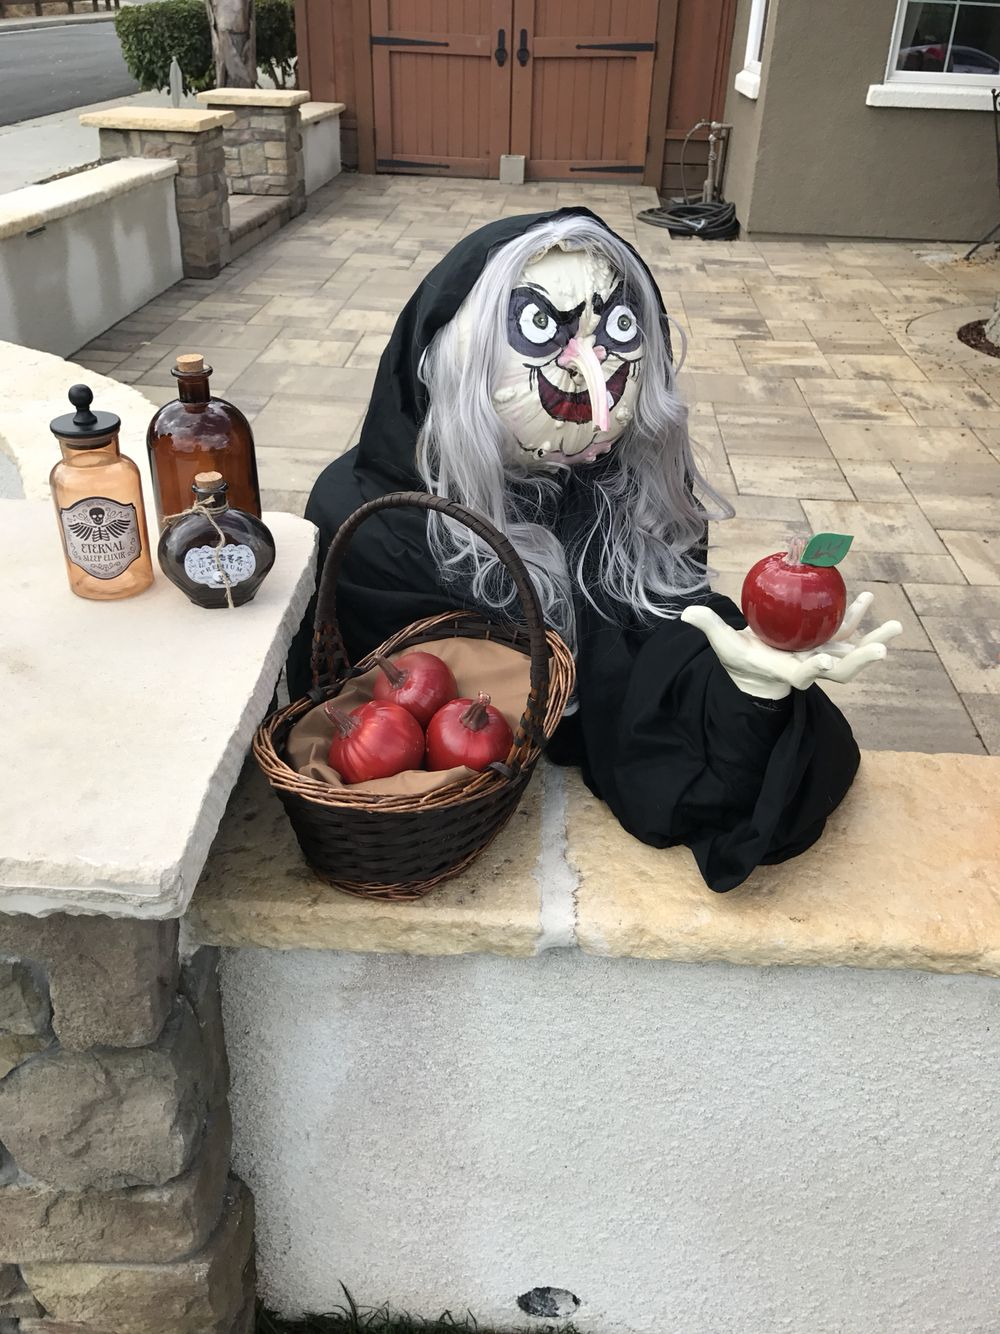 Wicked witch from Snow White created using a bumpy pumpkin with the